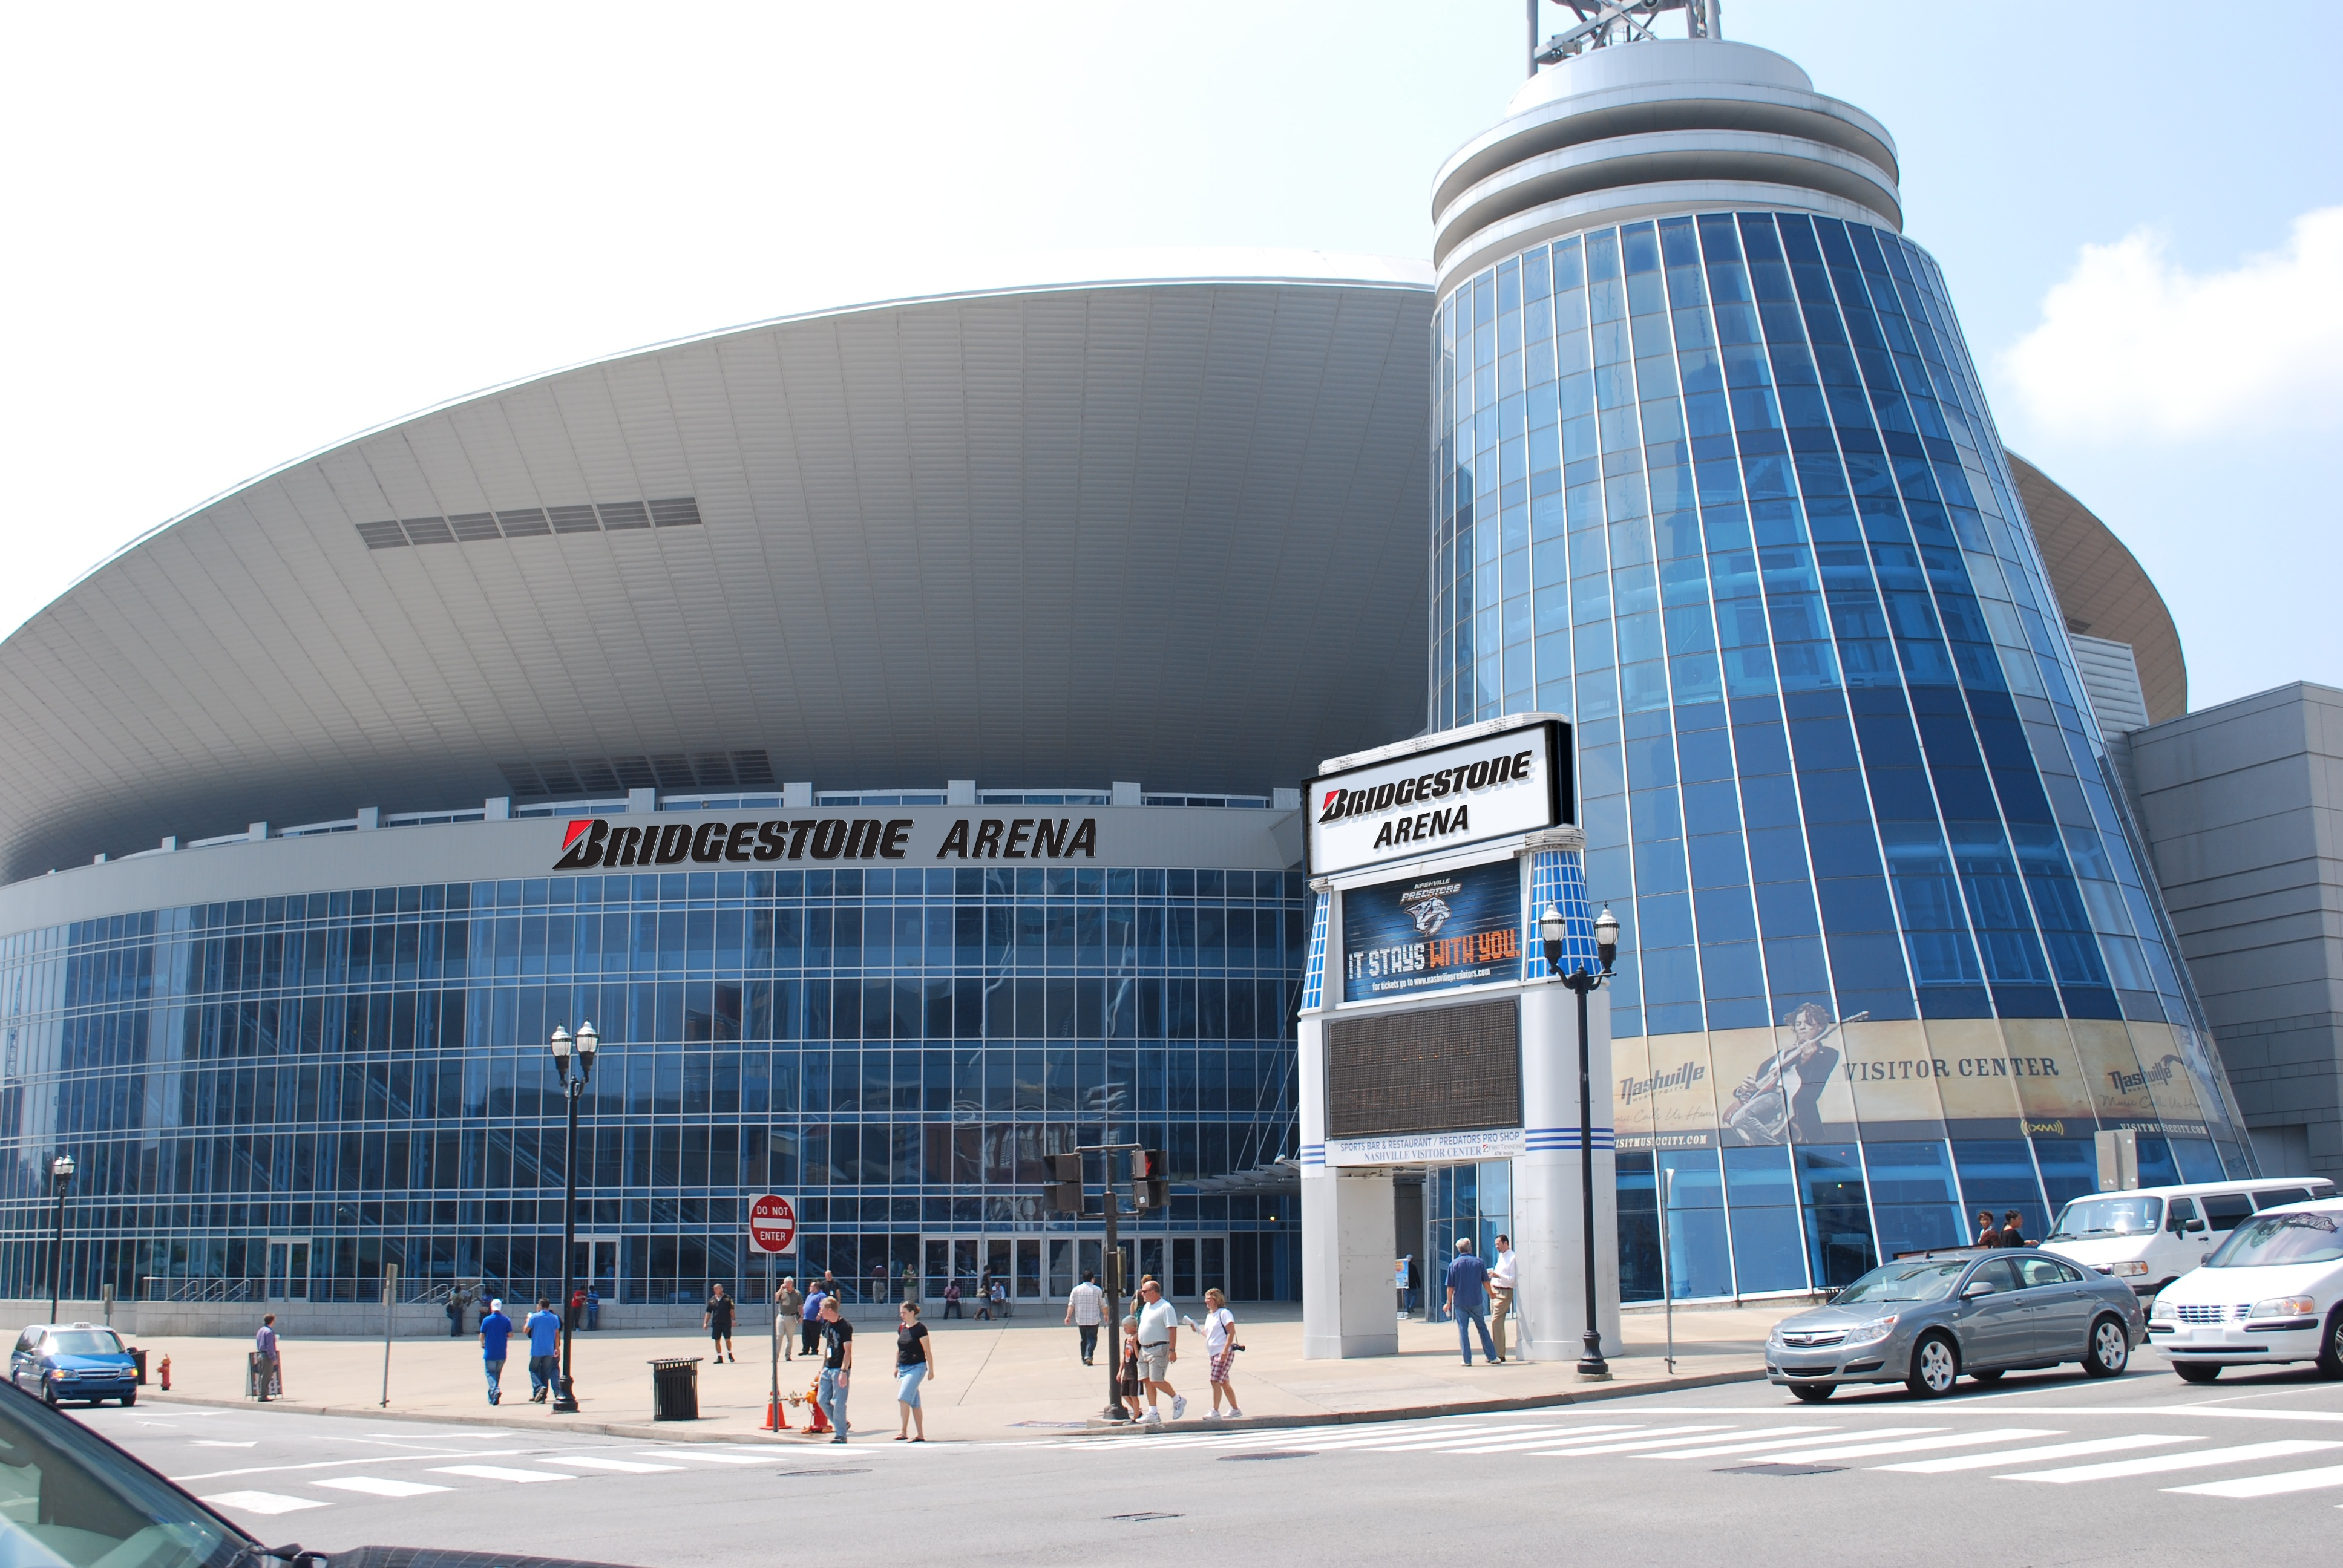 <a href='http://www.ticketsreview.com/bridgestone-arena.html'>Bridgestone Arena tickets</a>